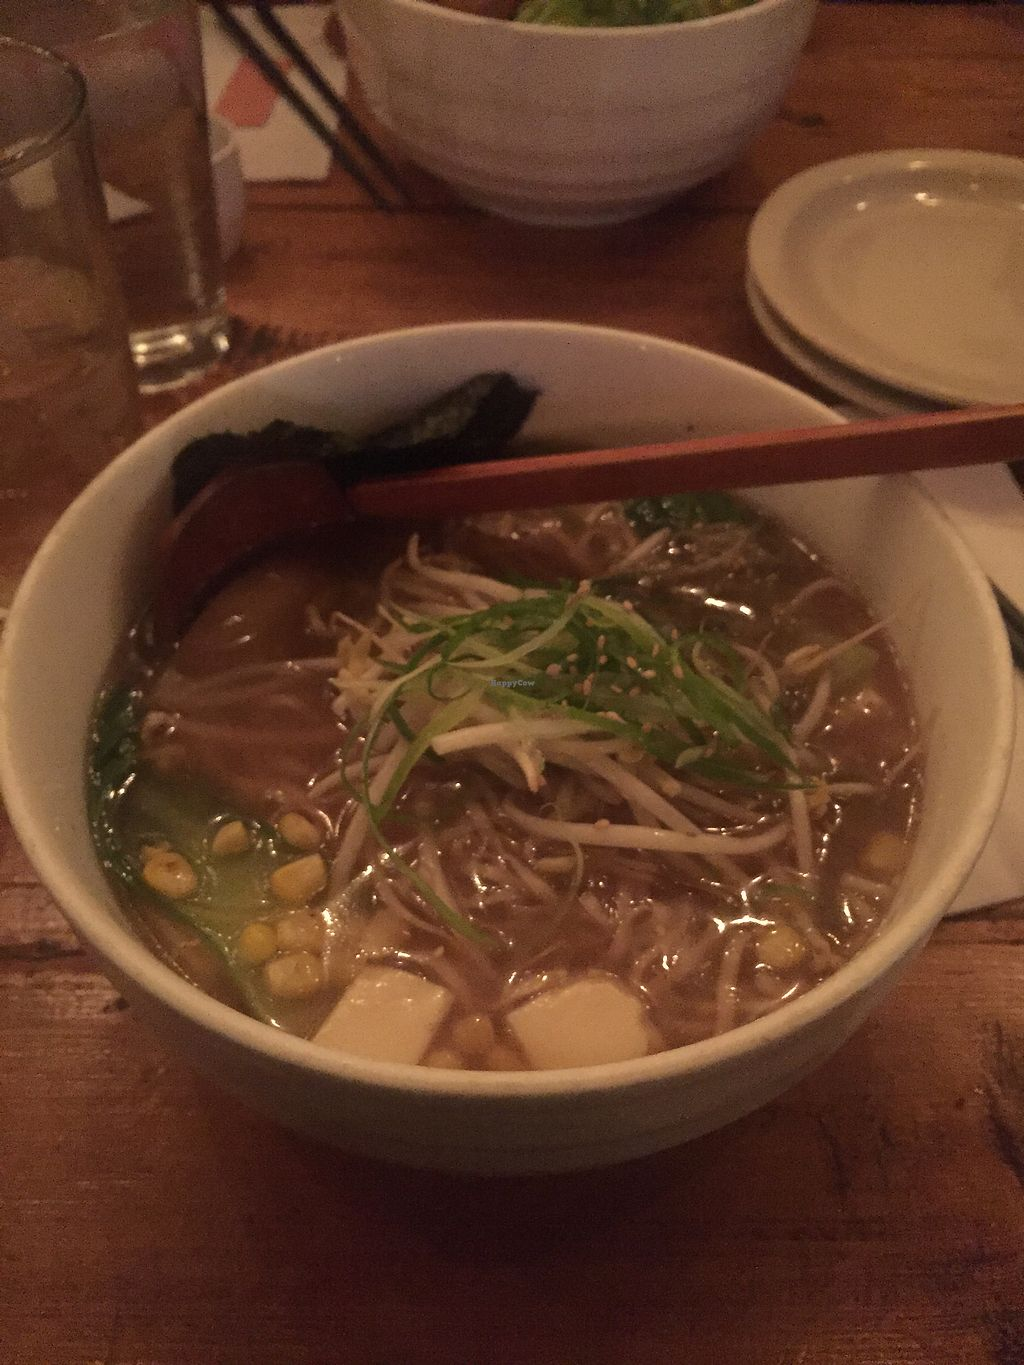 """Photo of Jin Ramen  by <a href=""""/members/profile/NathanOriol"""">NathanOriol</a> <br/>Vegetable bowl  <br/> January 15, 2018  - <a href='/contact/abuse/image/57015/346781'>Report</a>"""